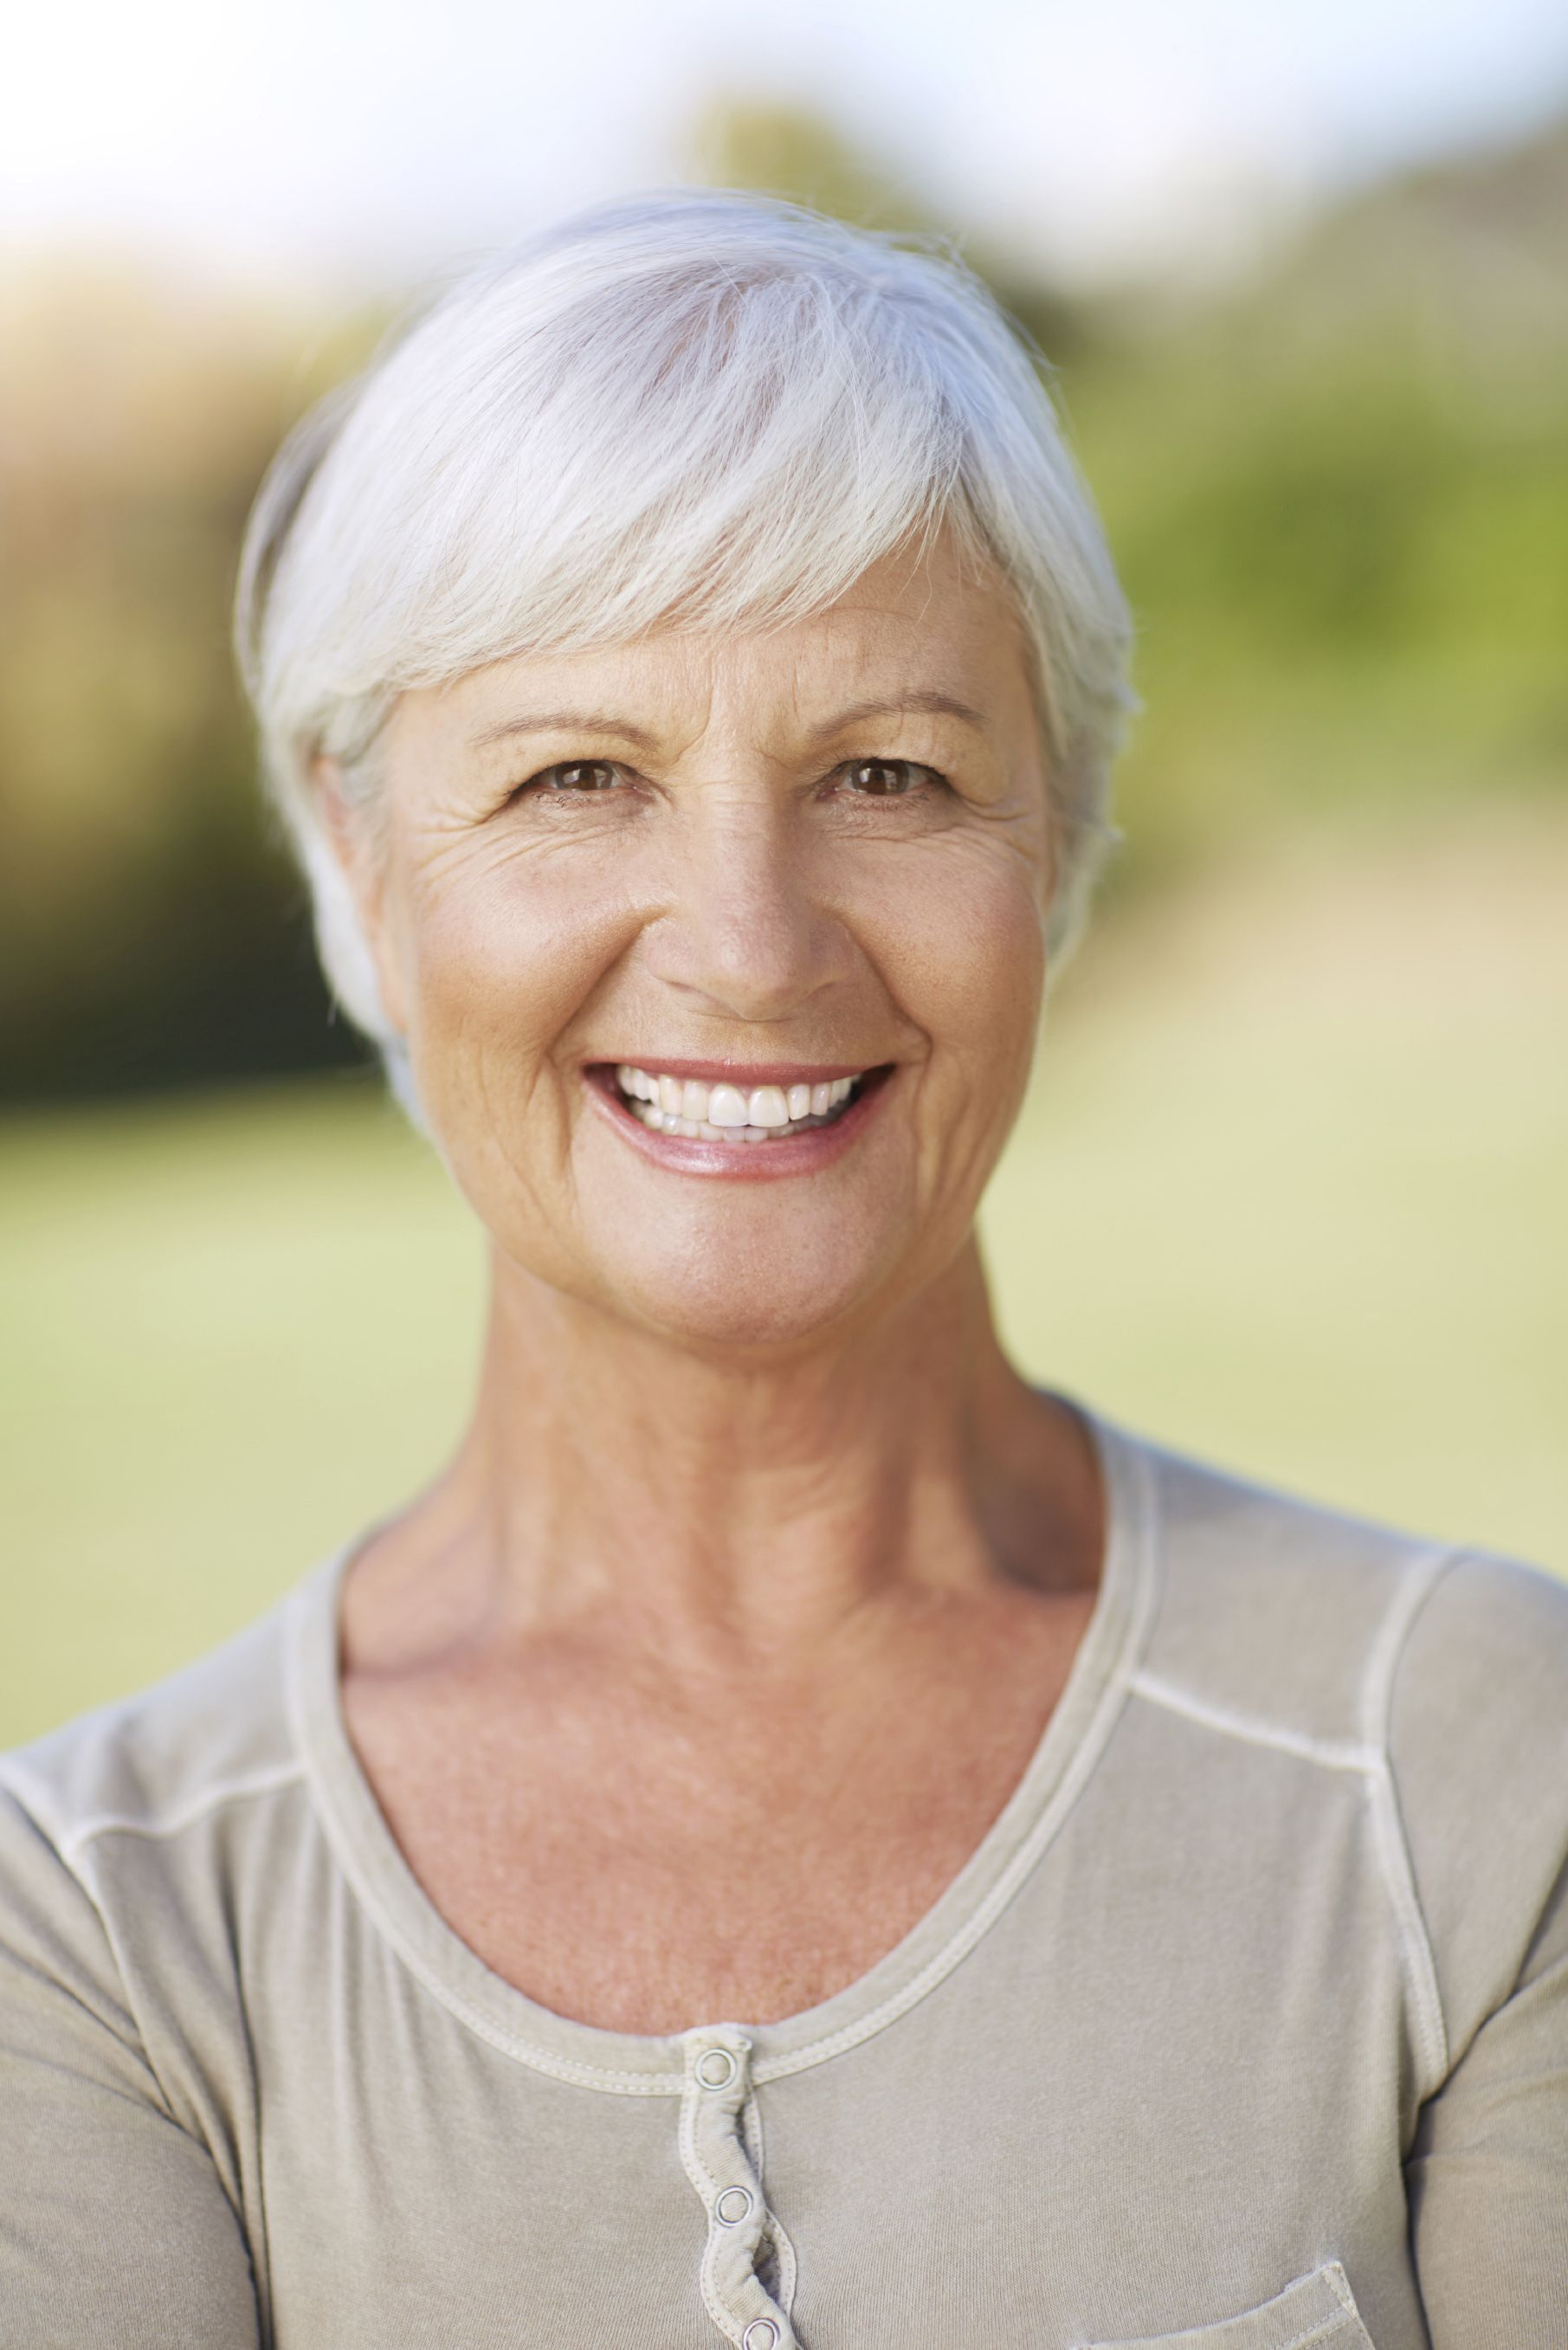 A senior woman with a healthy, vibrant smile